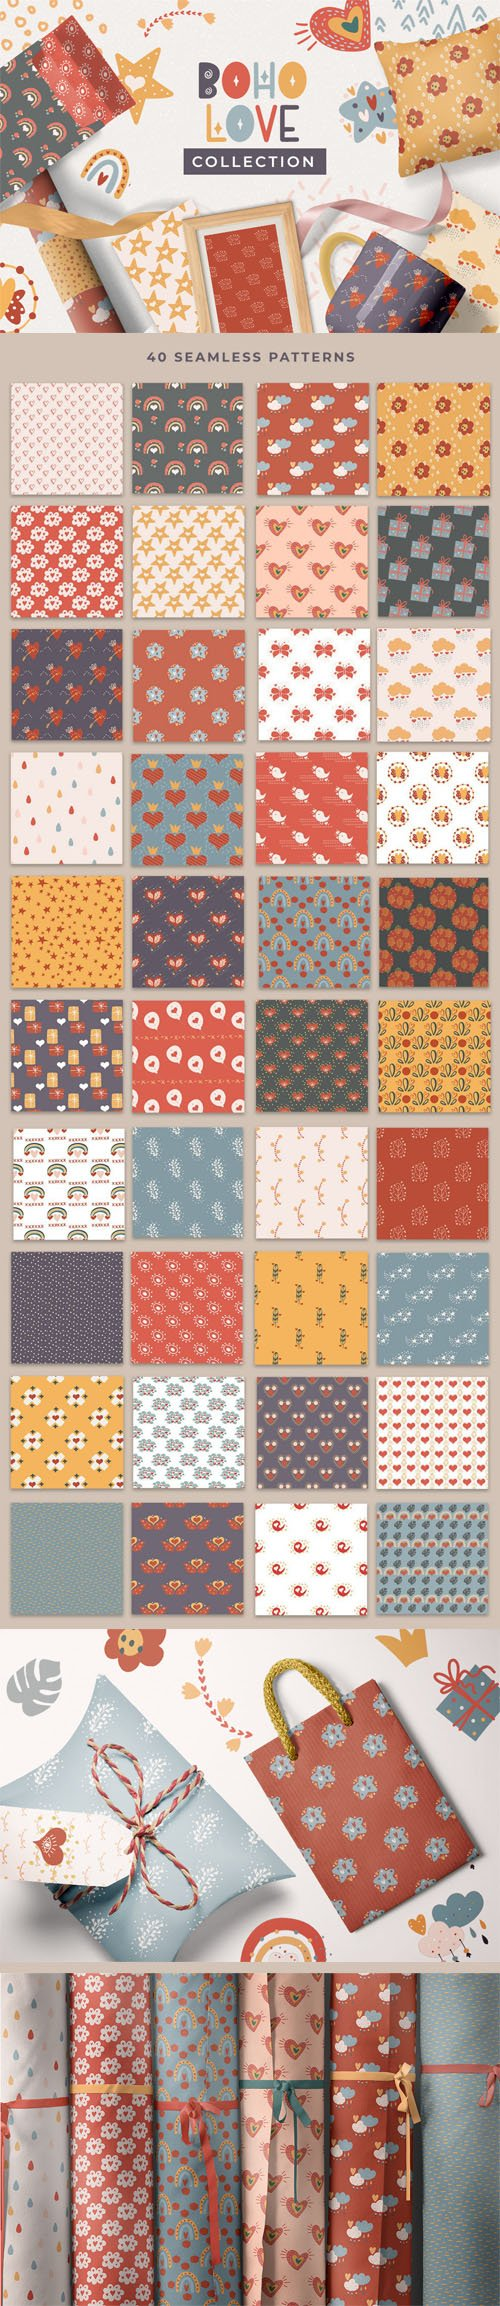 Boho Love Collection - 40 Seamless Patterns